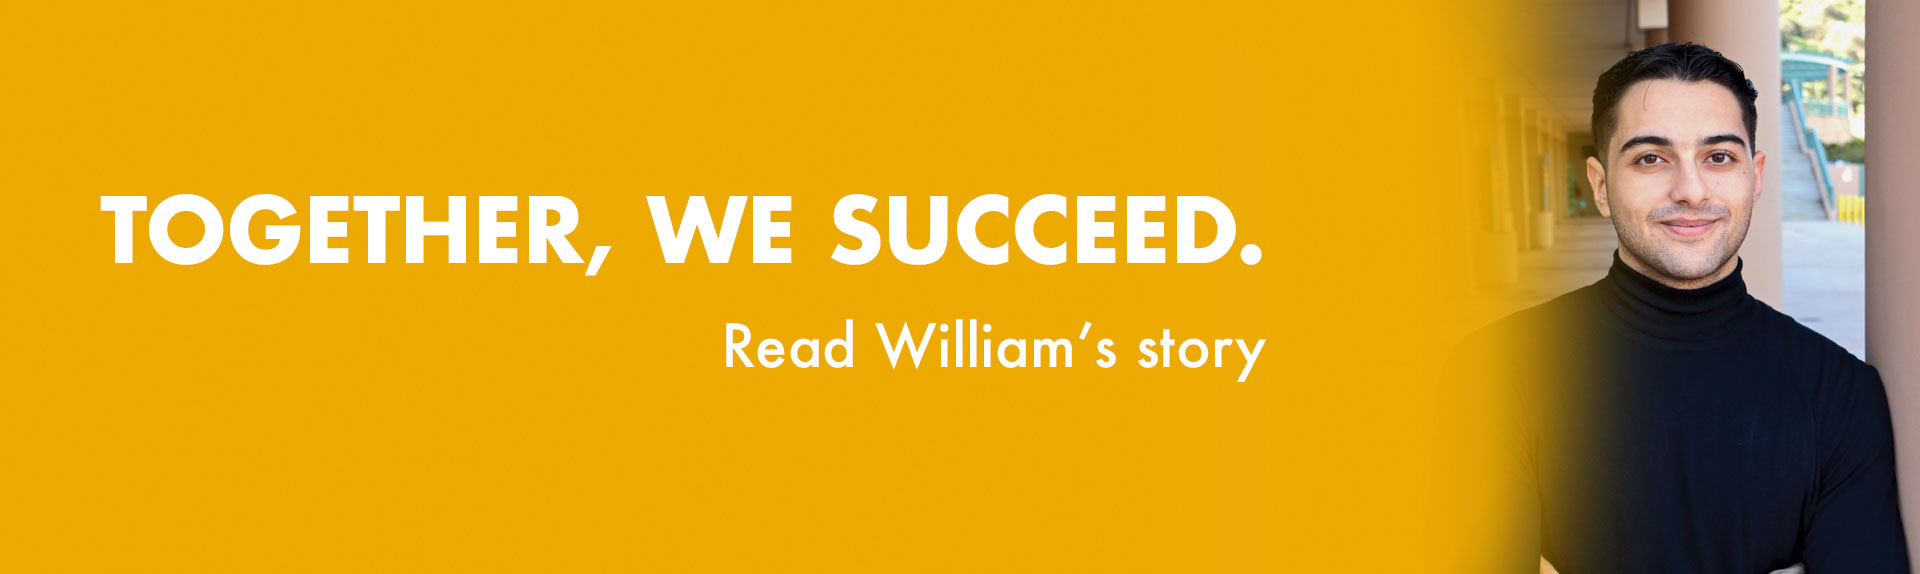 Together, we succeed. Read William's story.